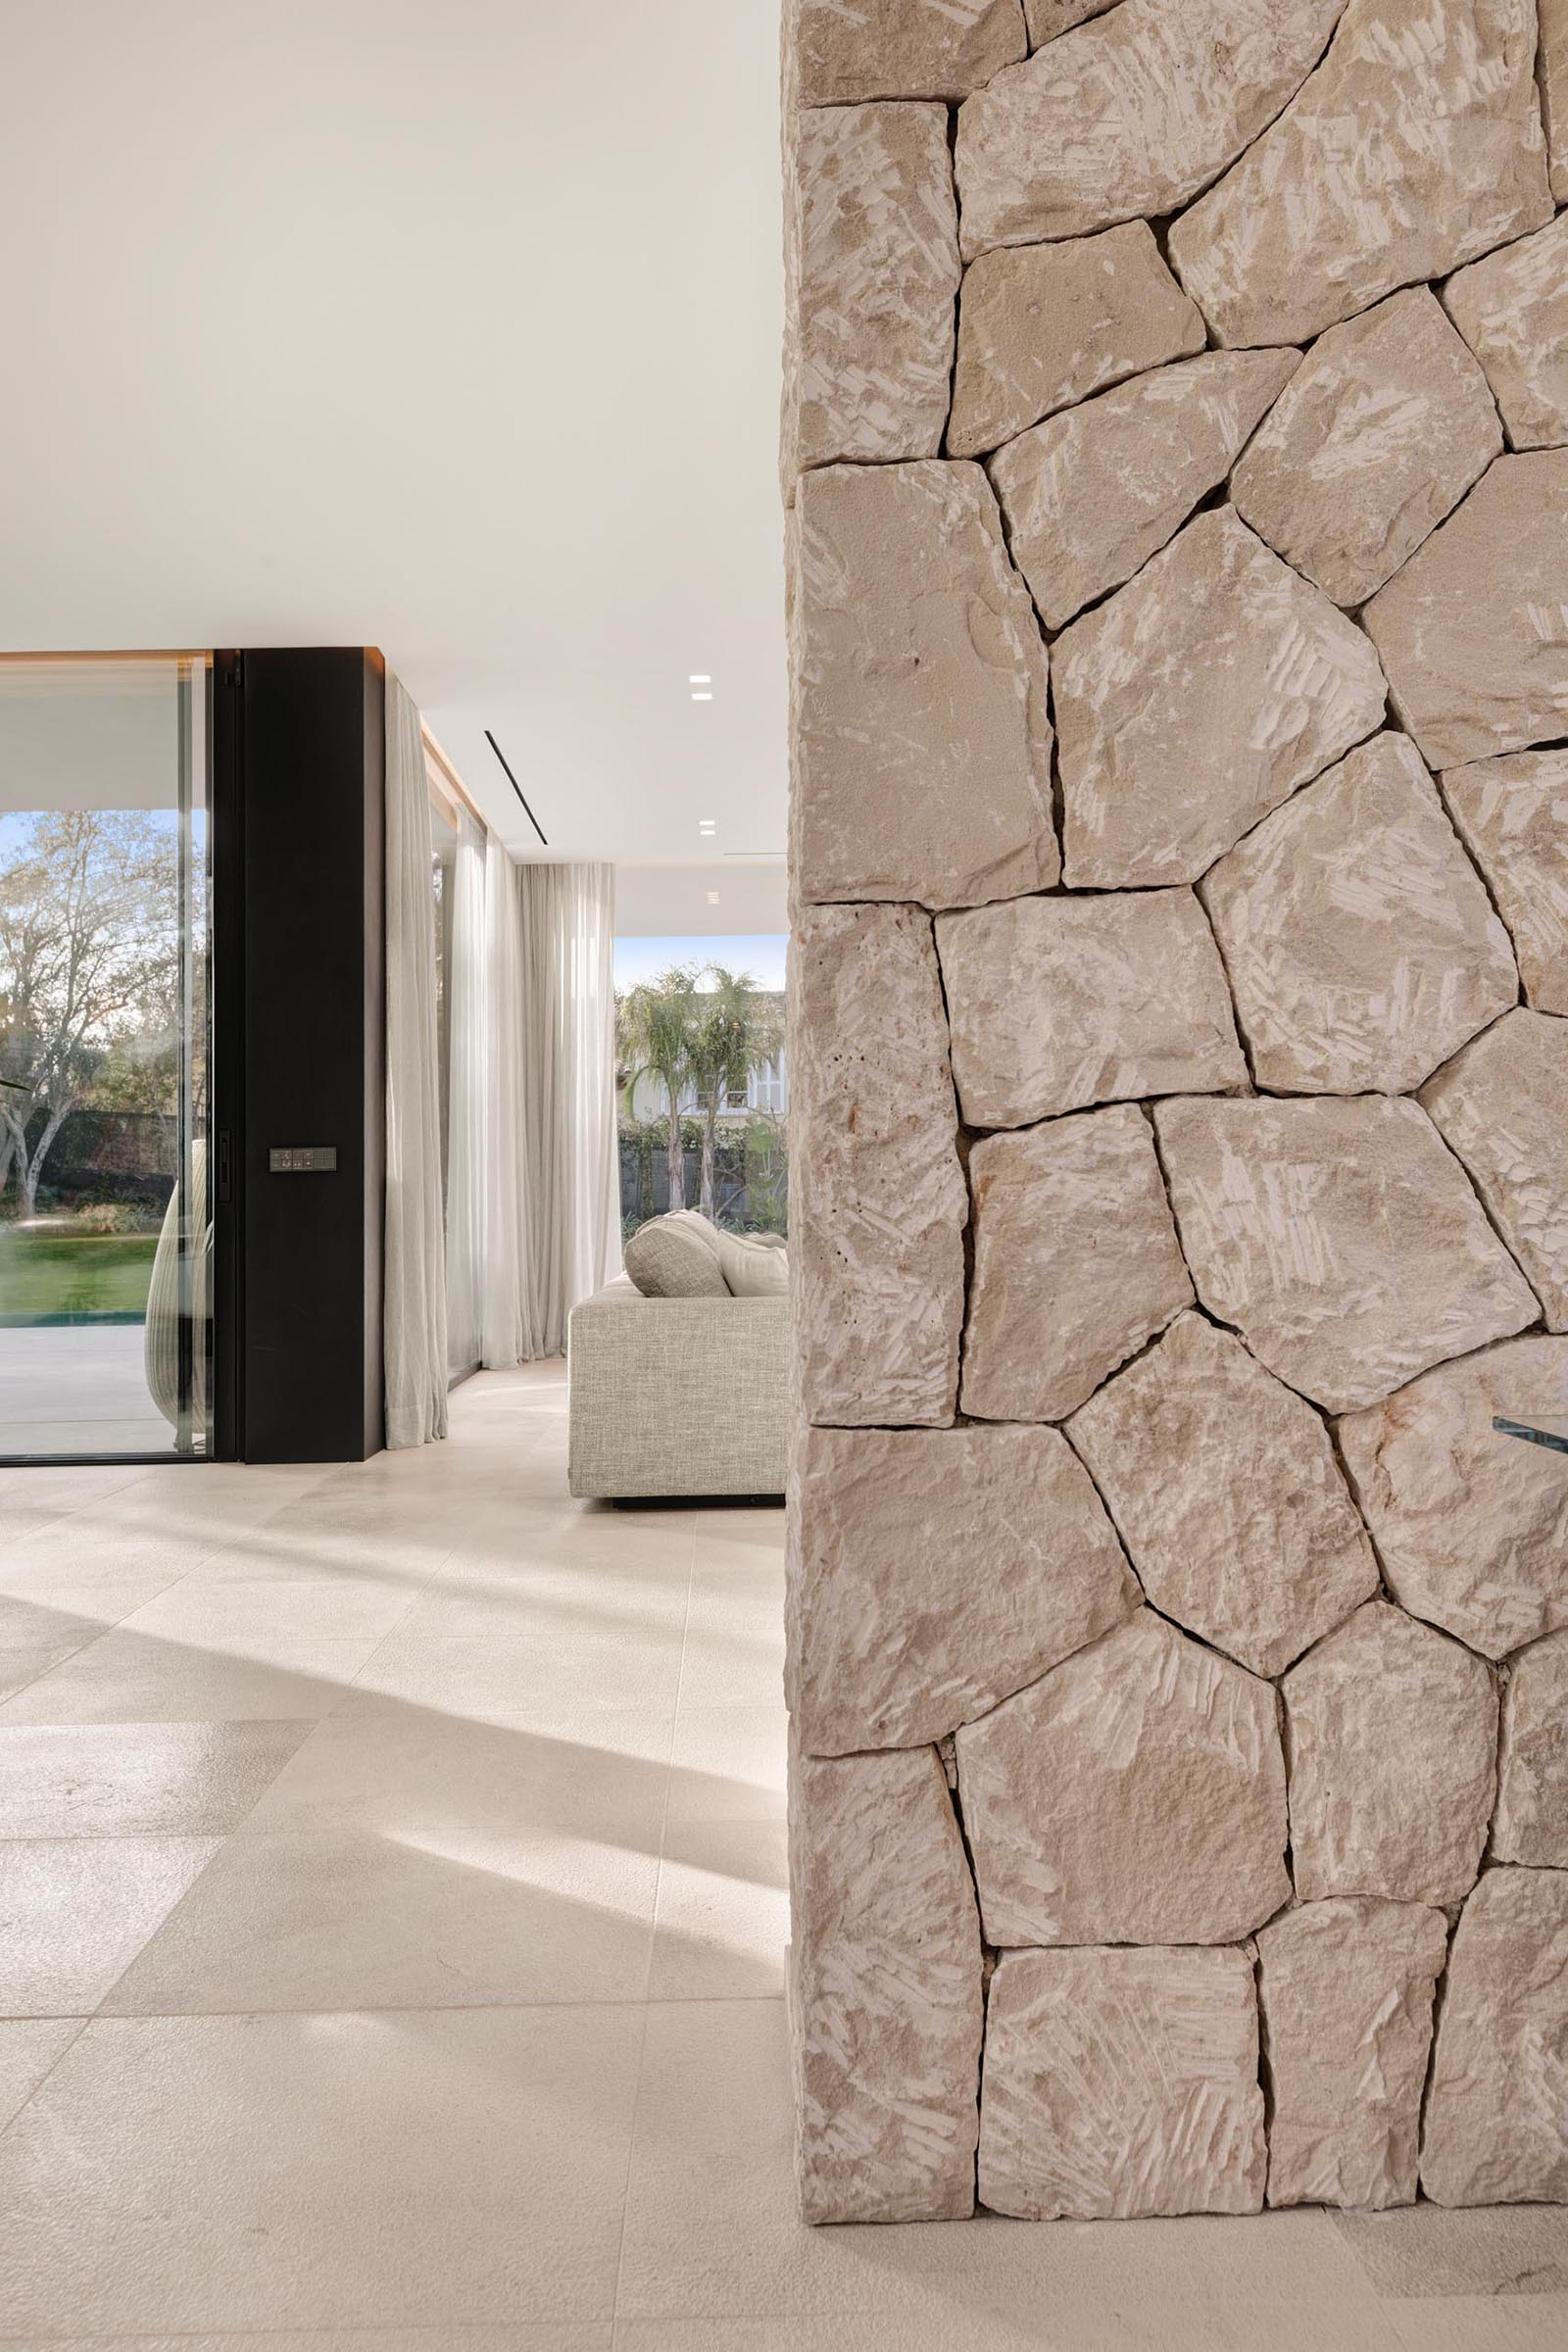 The local dry stone used on the exterior of this modern home, has also been introduced to the interior in the form of accent walls.